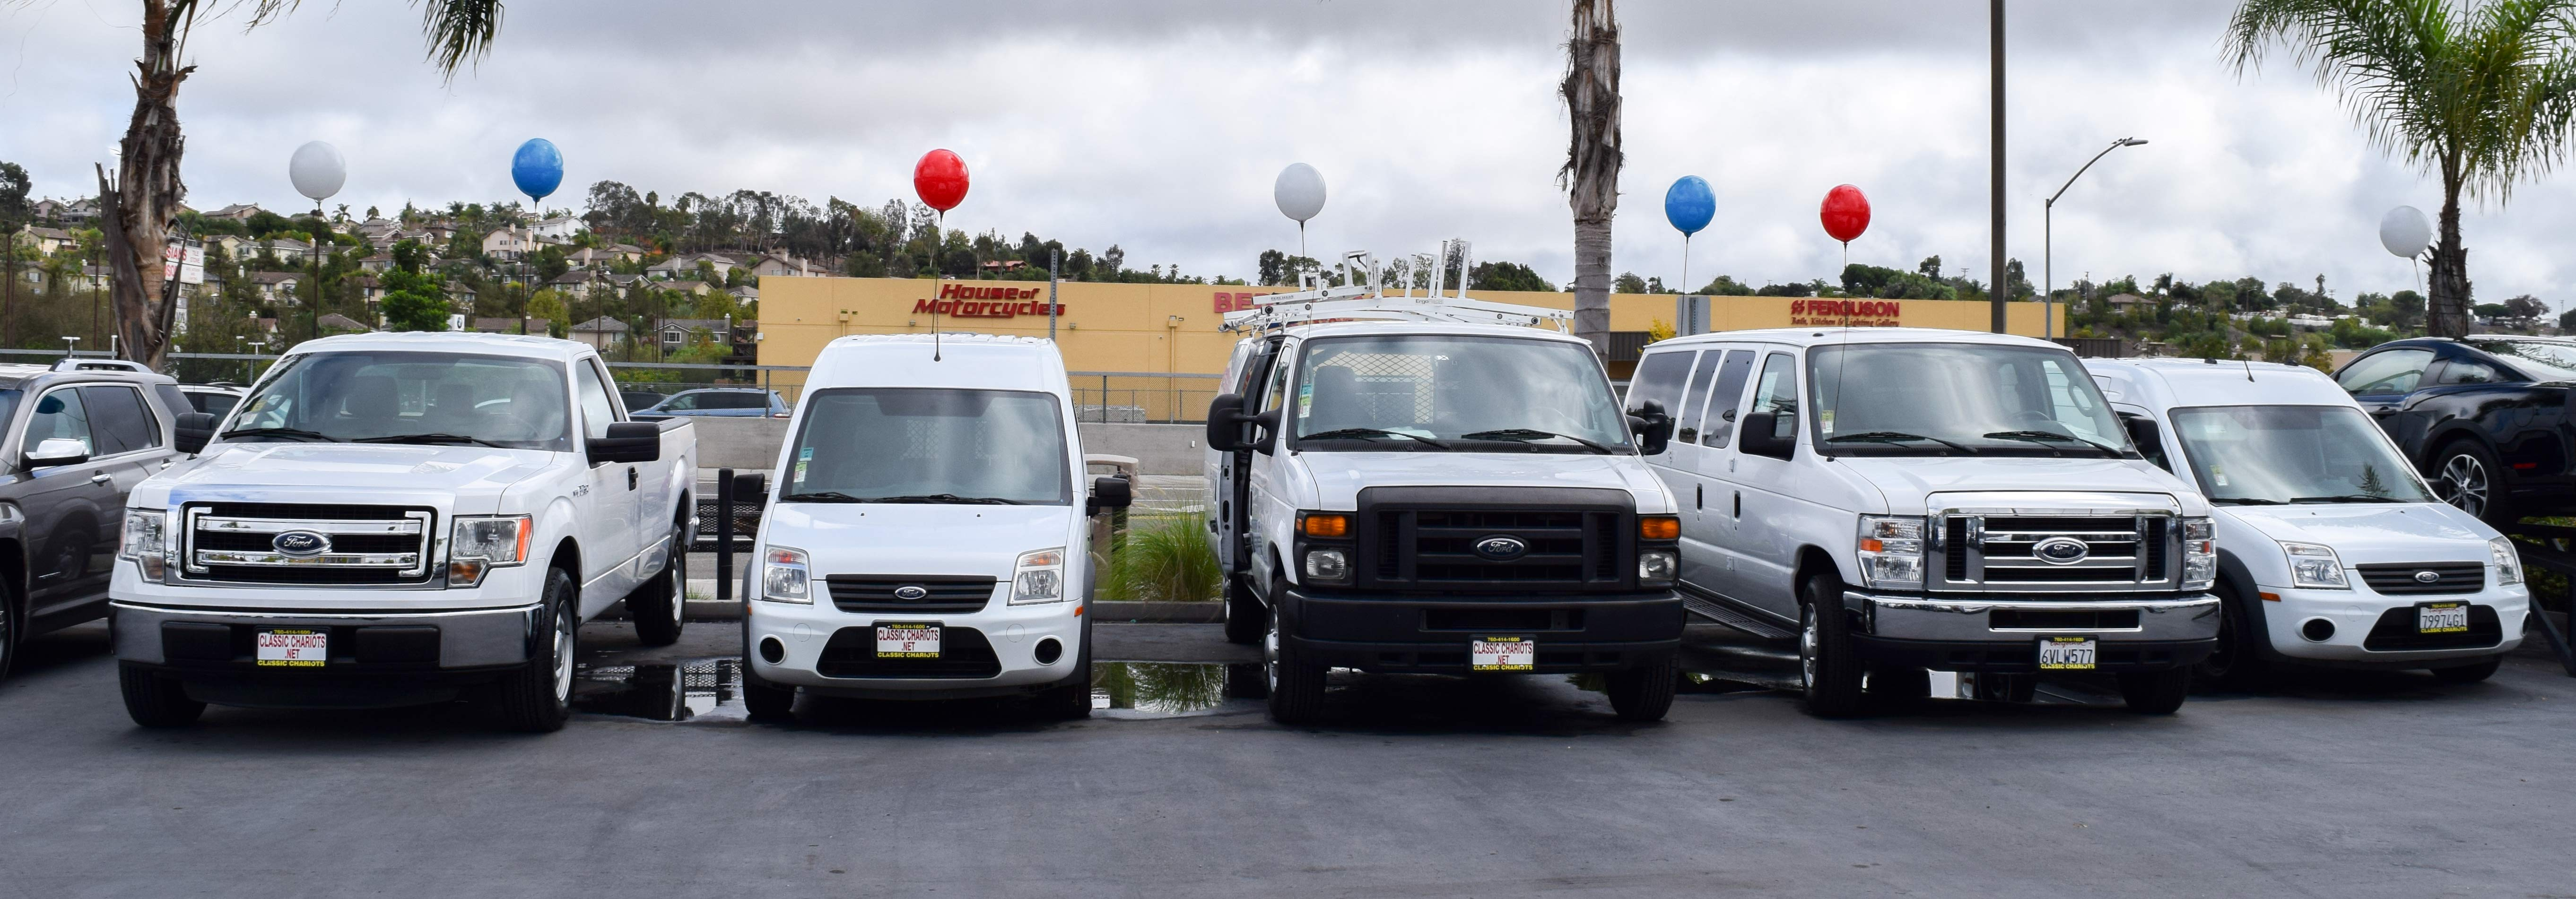 Used Cars for Sale San Diego Inspirational Mercial Vehicles Cargo Vans Mini Cargo Vans Transit Promaster